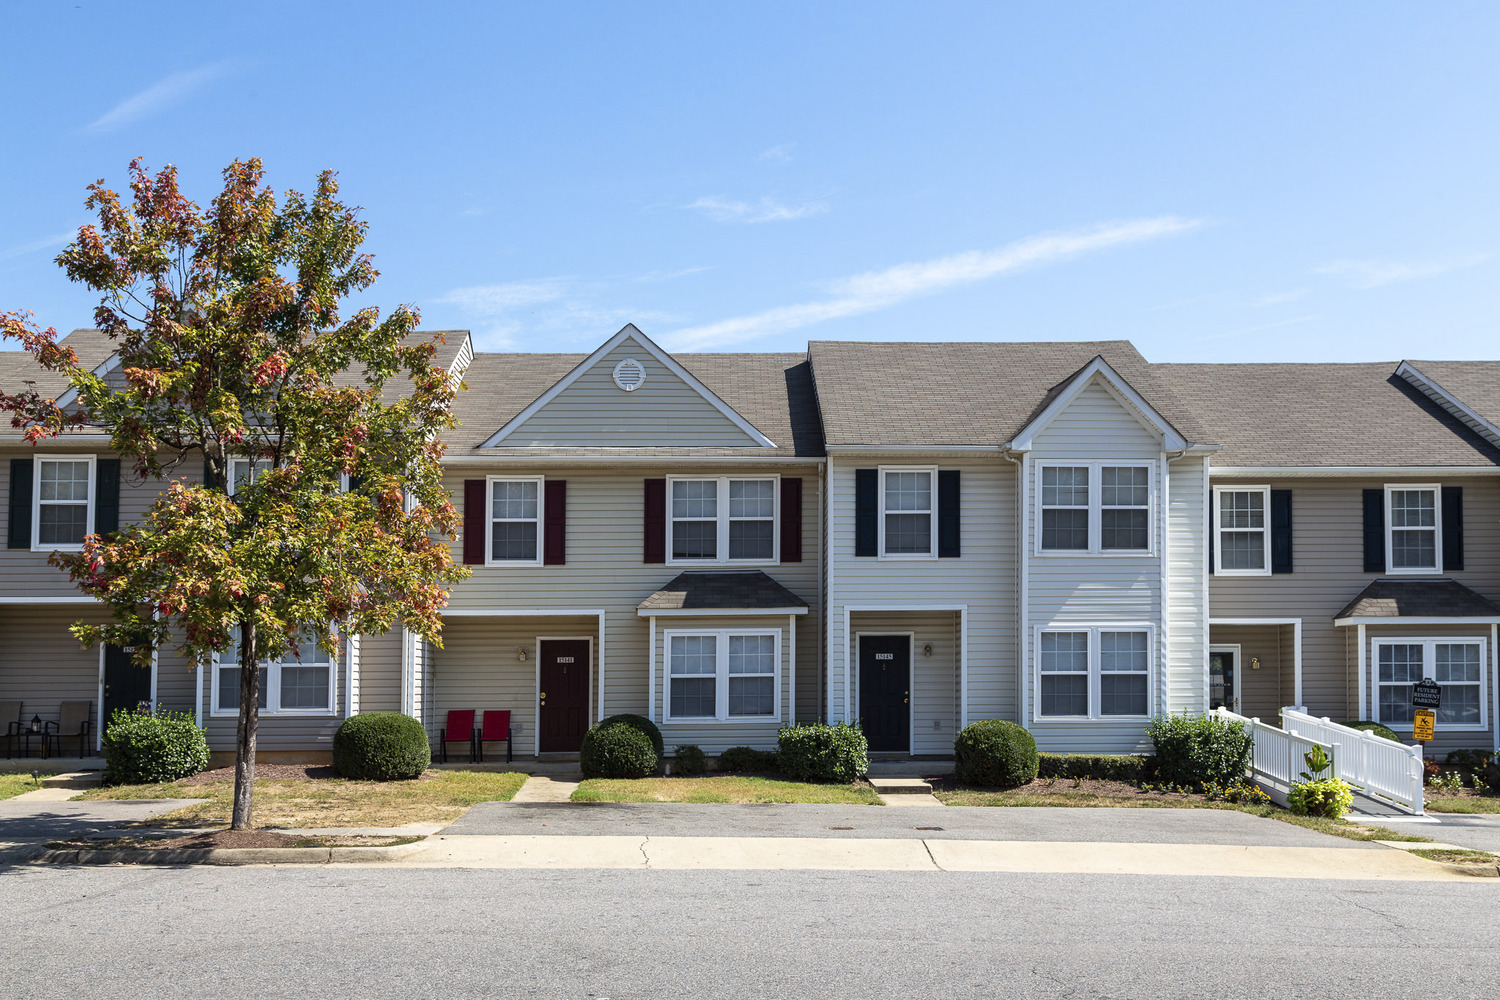 CBG builds Broadwater Townhomes, a 150 Townhome Apartments in Chester, VA - Image #1